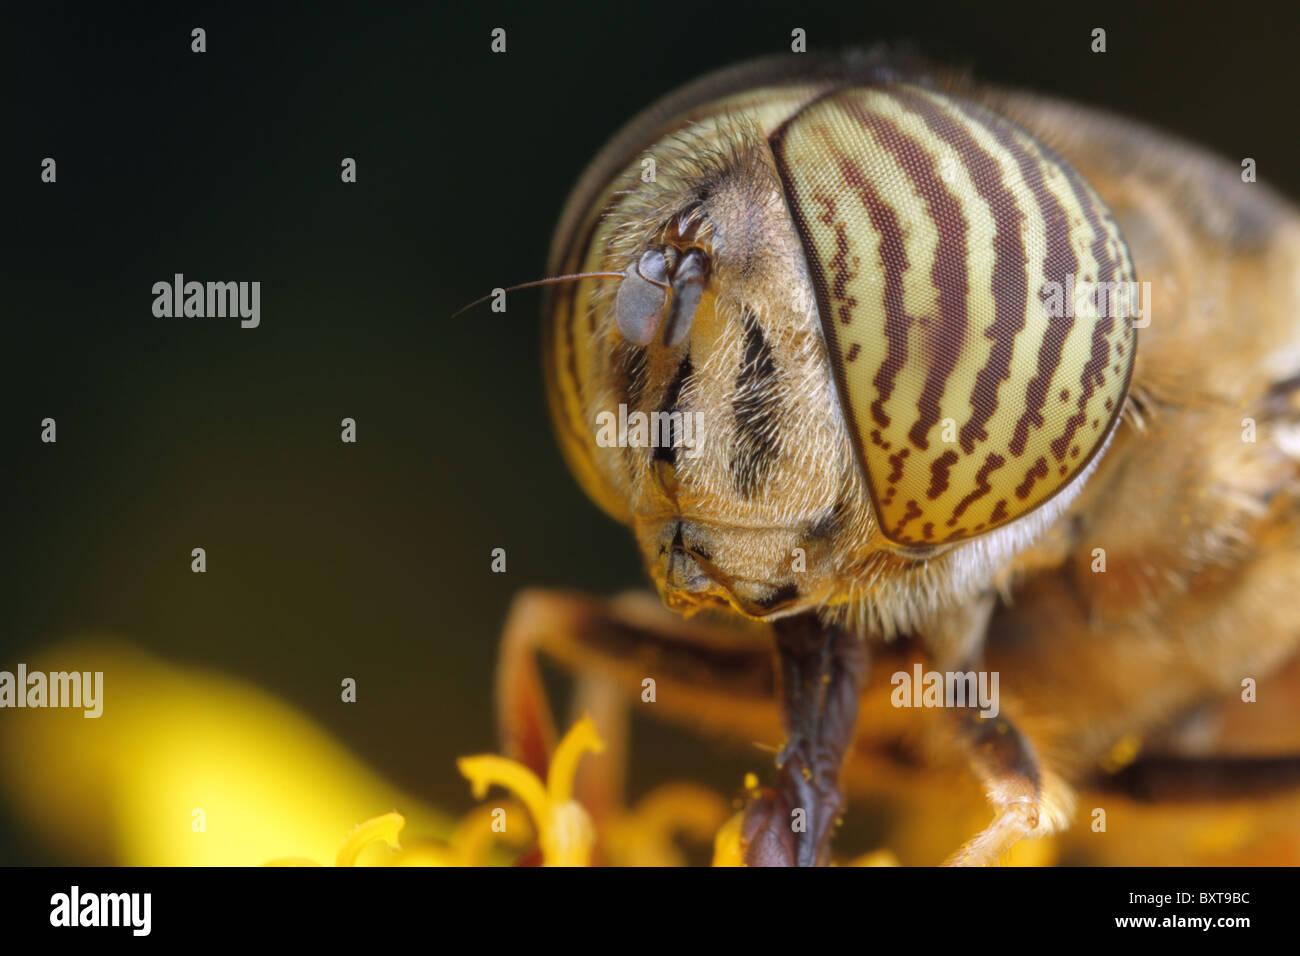 A male drone hoverfly collecting pollen into a yellow flower. - Stock Image